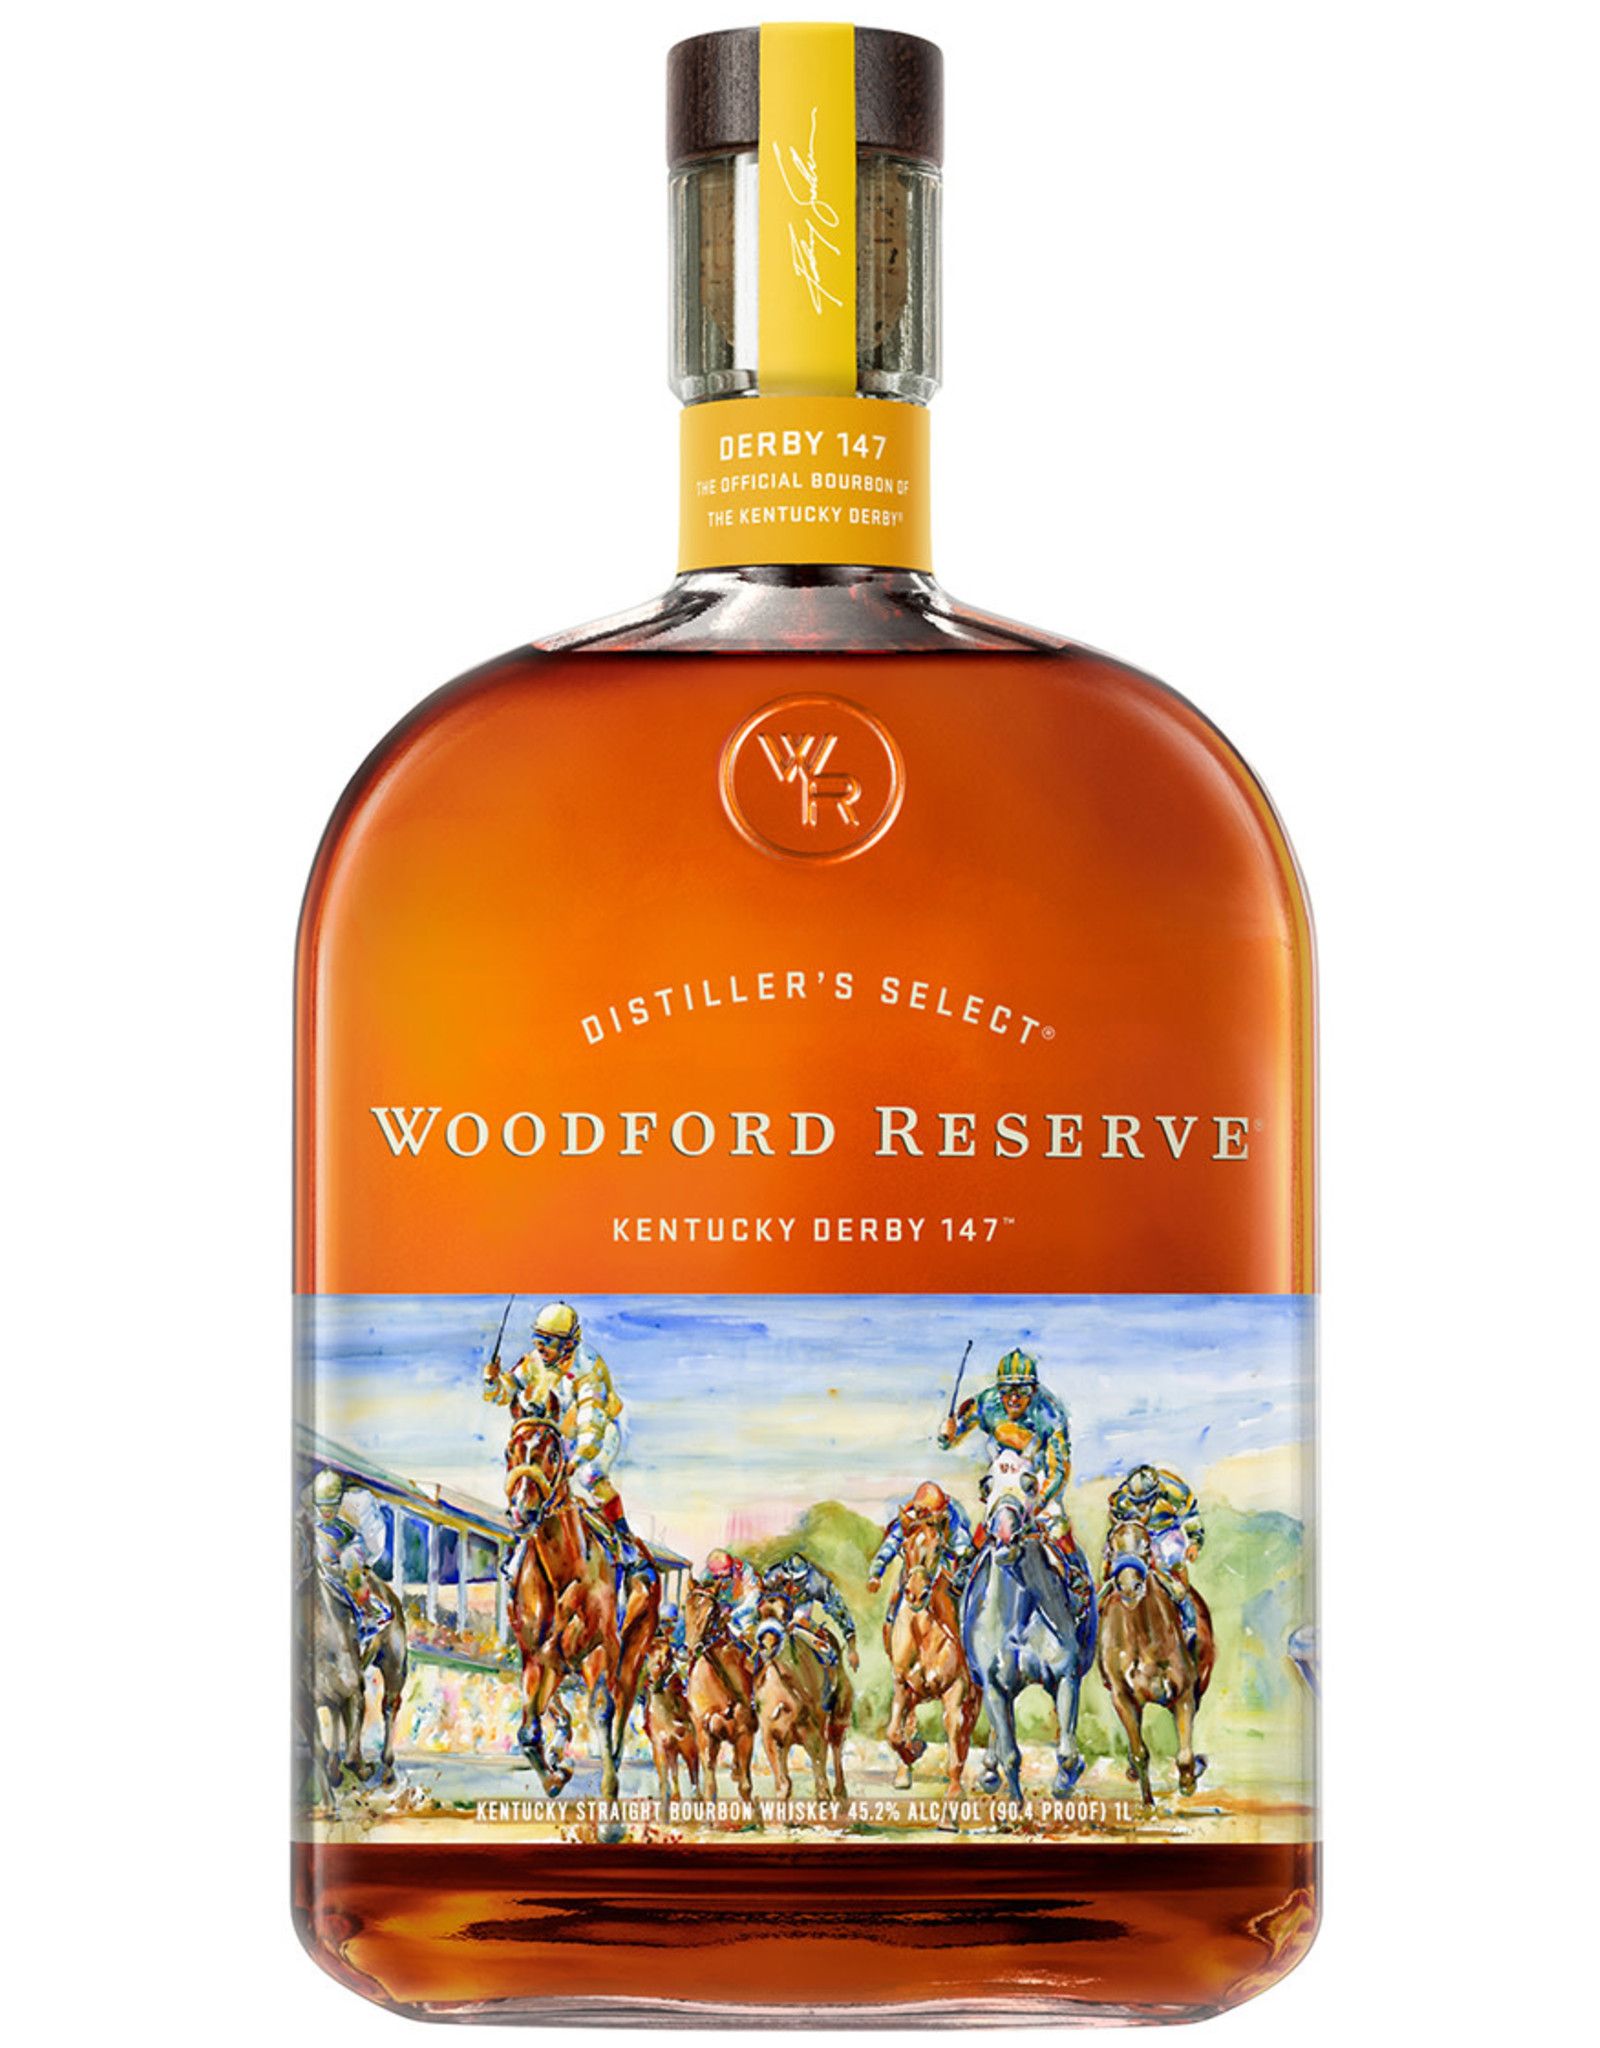 Woodford Reserve Kentucky Derby 147th Edition liter